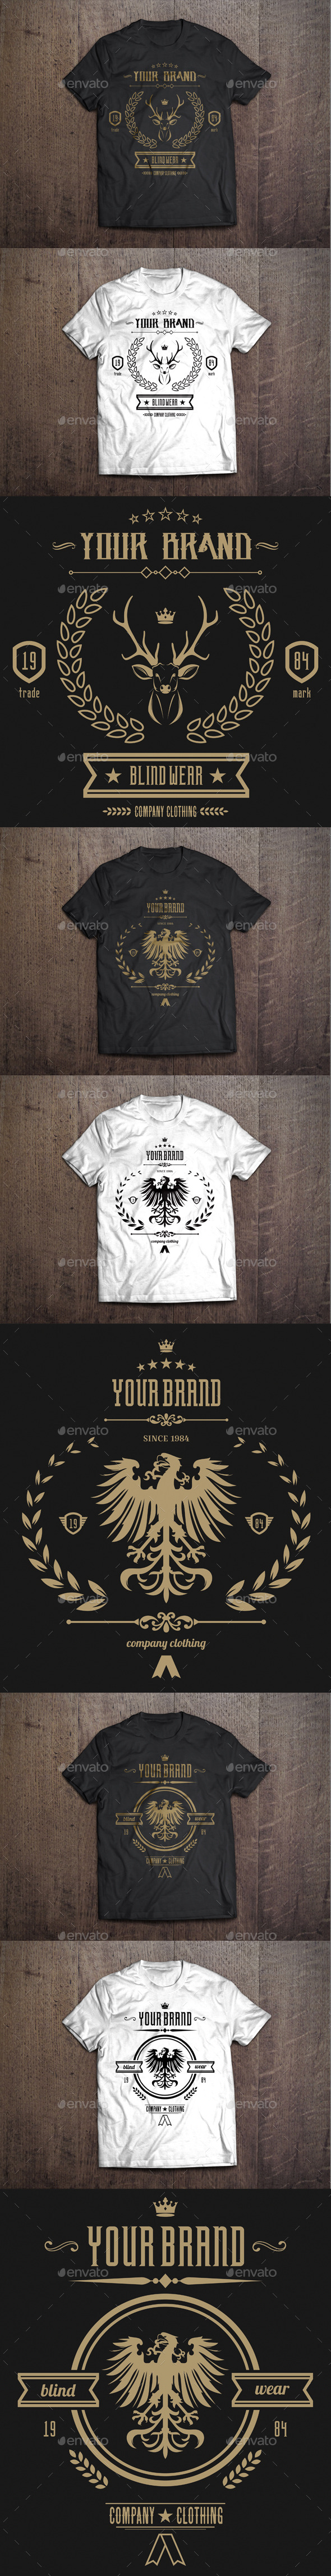 GraphicRiver 3 T-Shirt Template #1 9449119